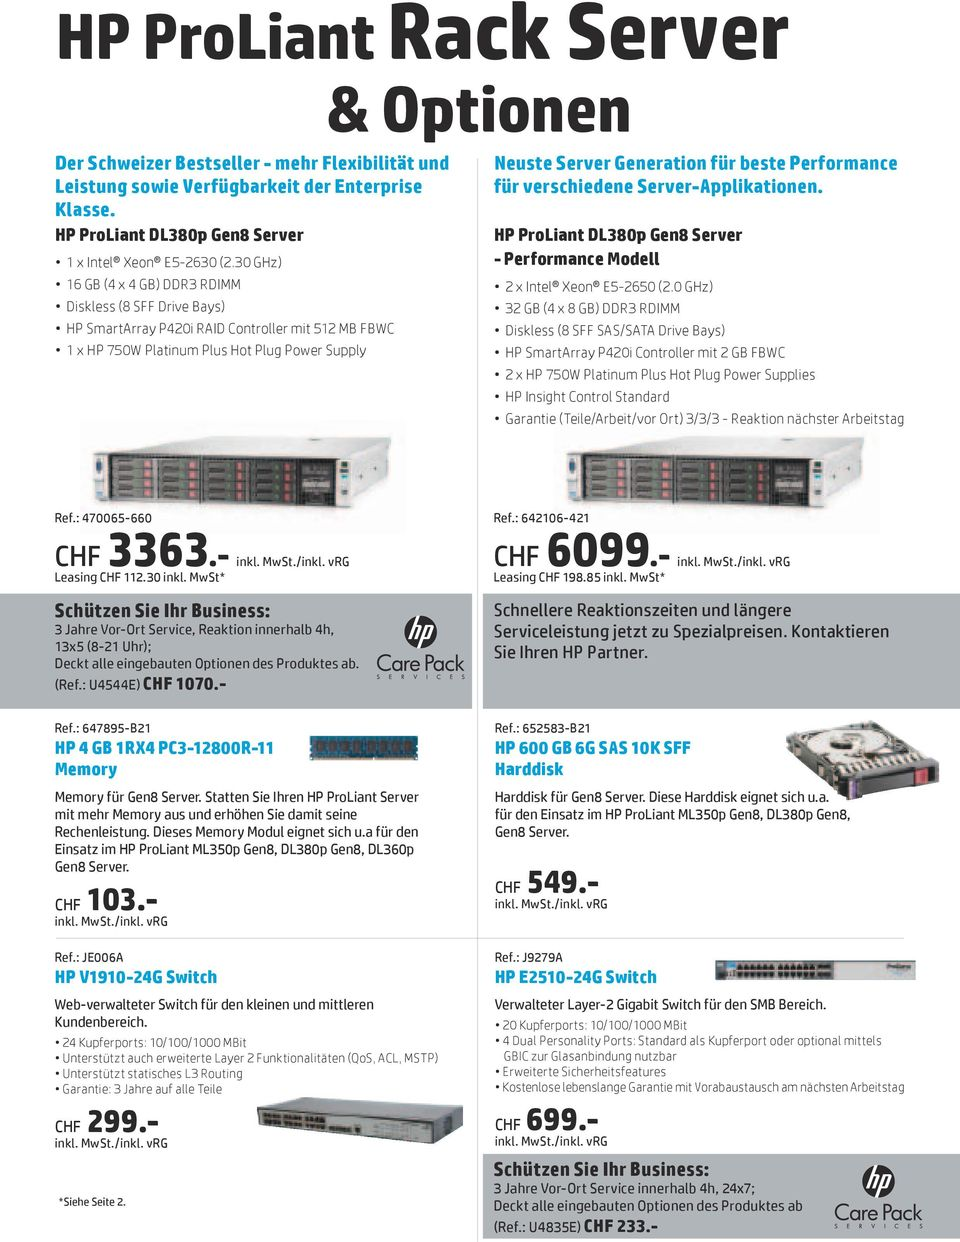 Performance für verschiedene Server-Applikationen. HP ProLiant DL380p Gen8 Server - Performance Modell 2 x Intel Xeon E5-2650 (2.